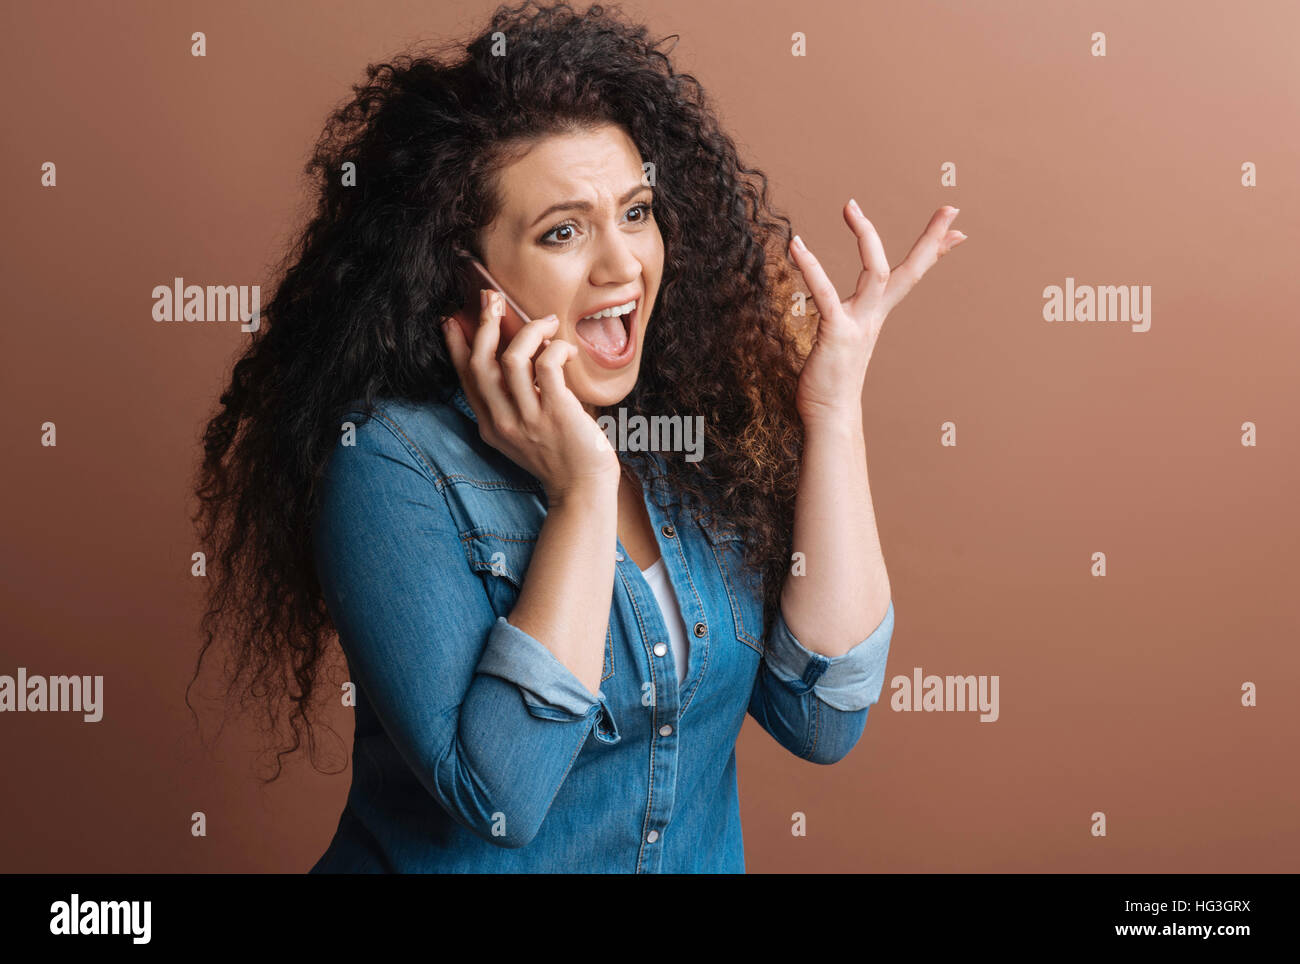 Pretty woman shouting at her causeur Photo Stock